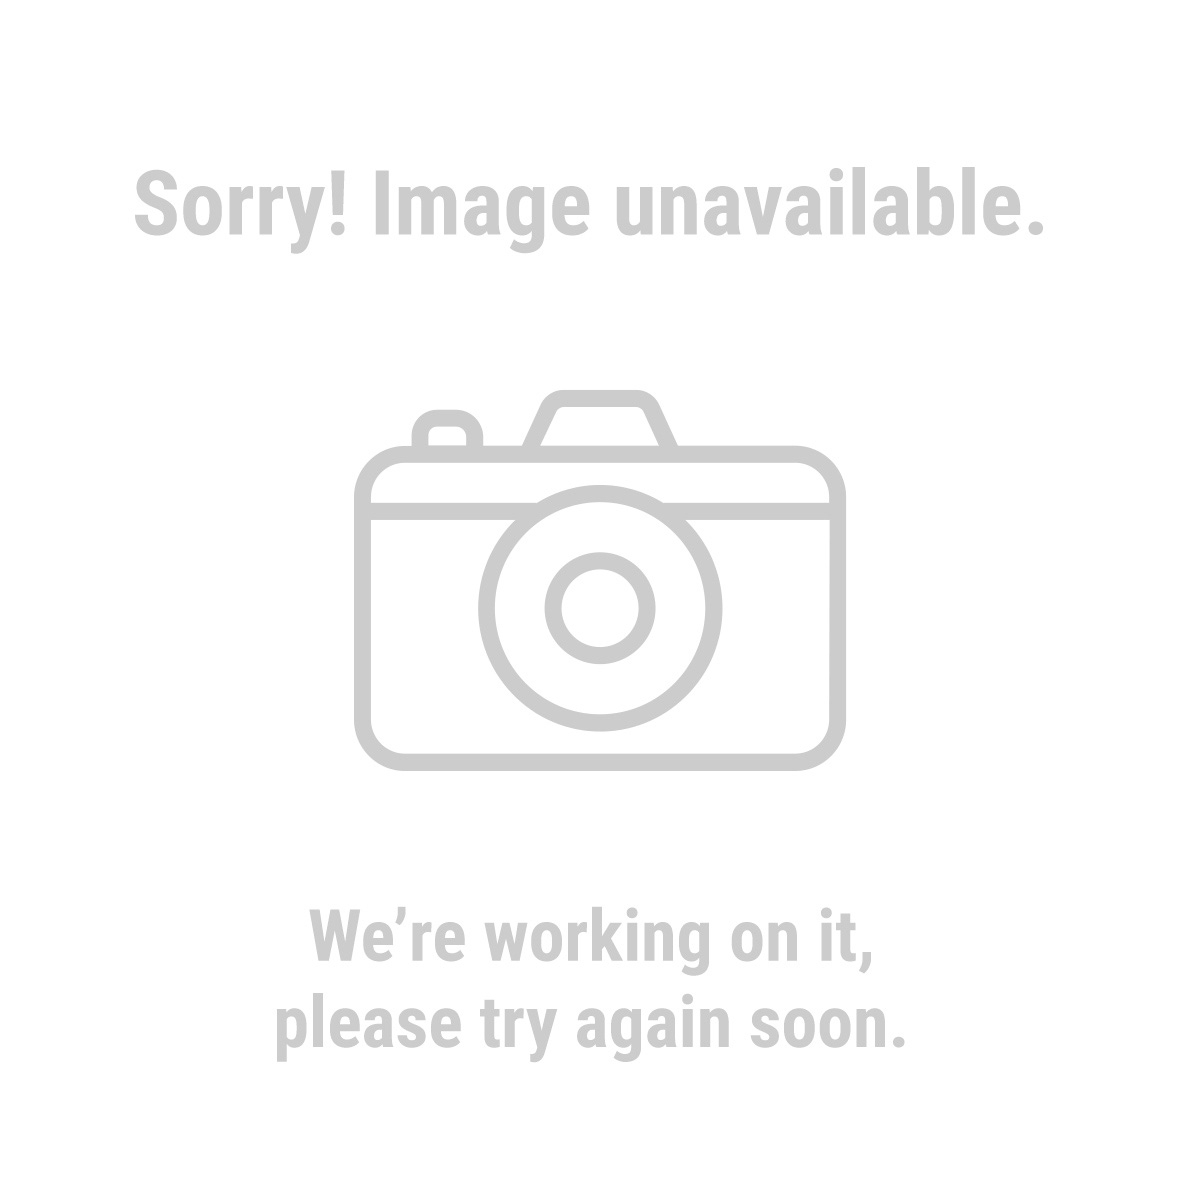 Central-Machinery 63256 2.5 Liter Ultrasonic Cleaner